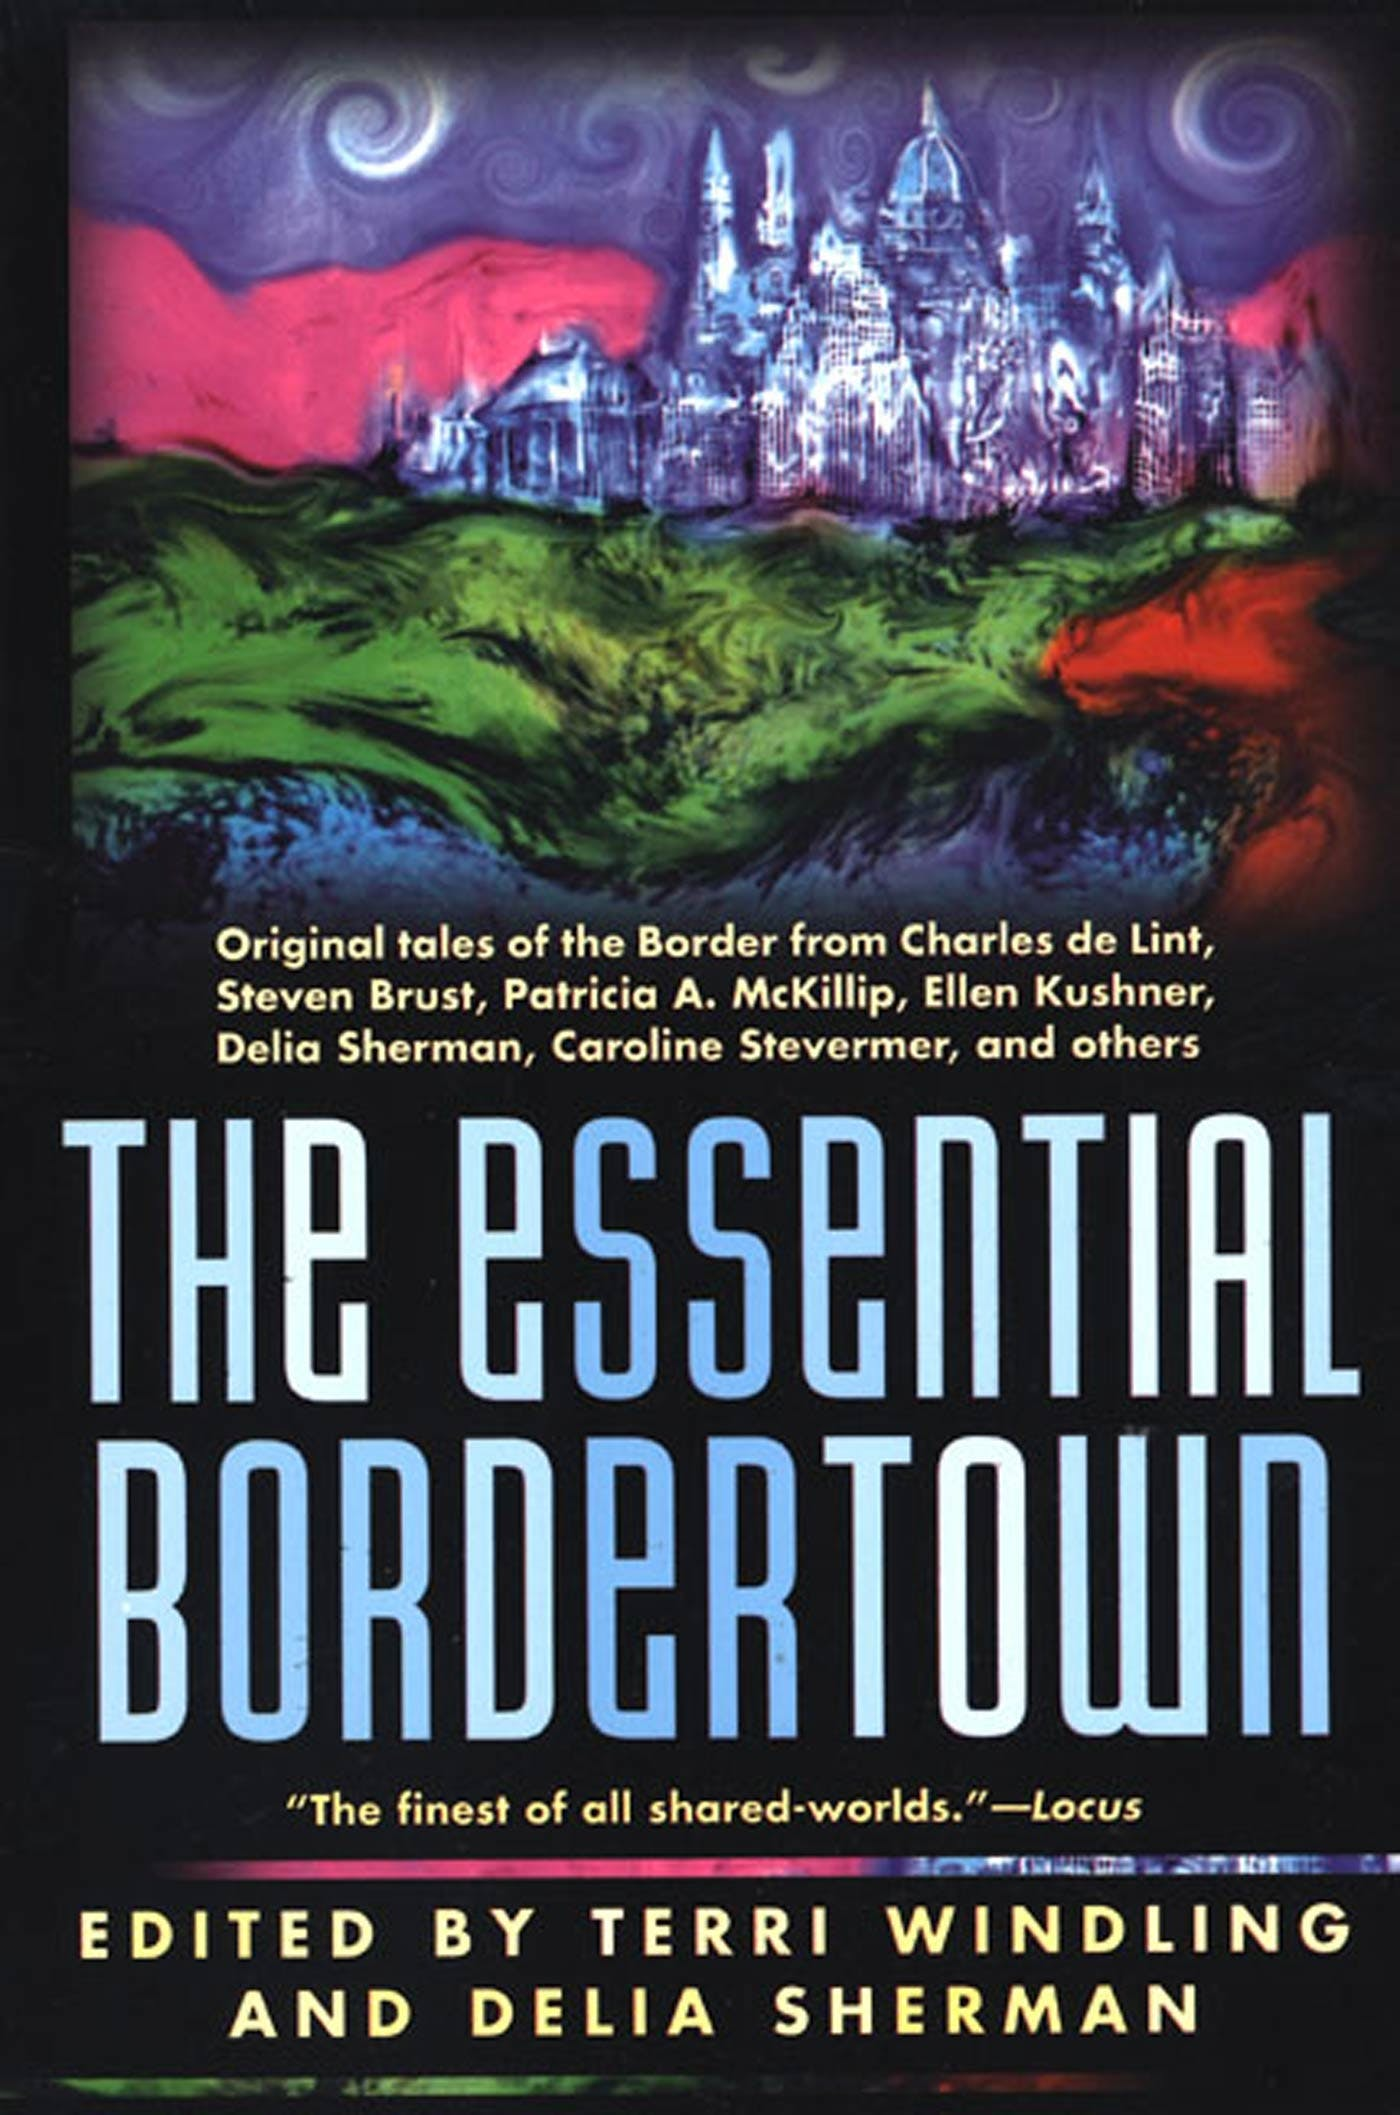 Image of The Essential Bordertown